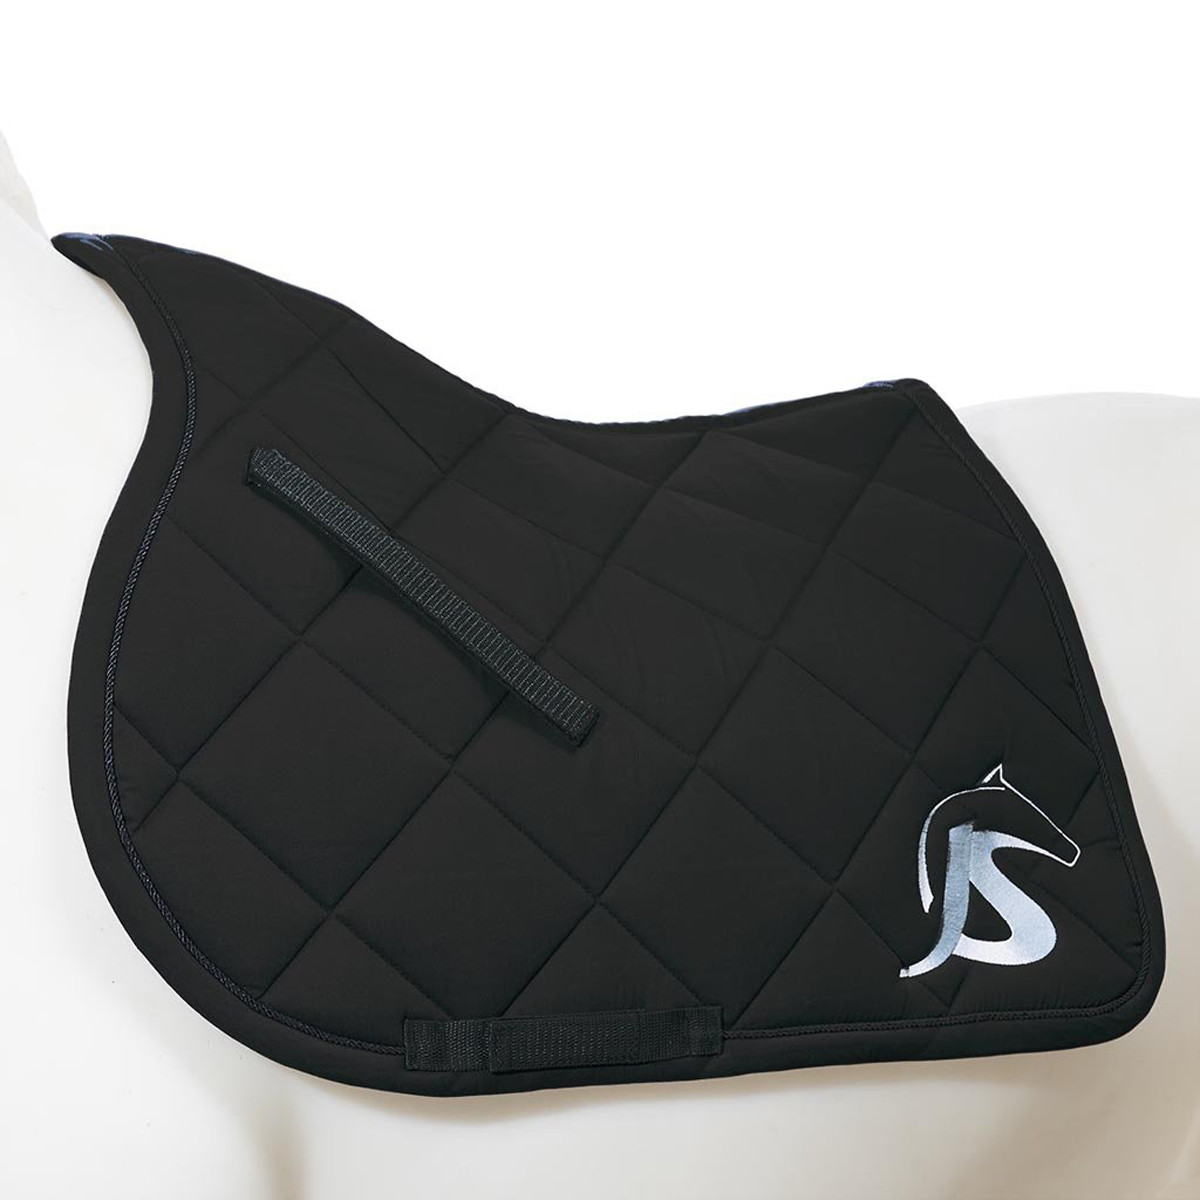 Jin Saddle Pad